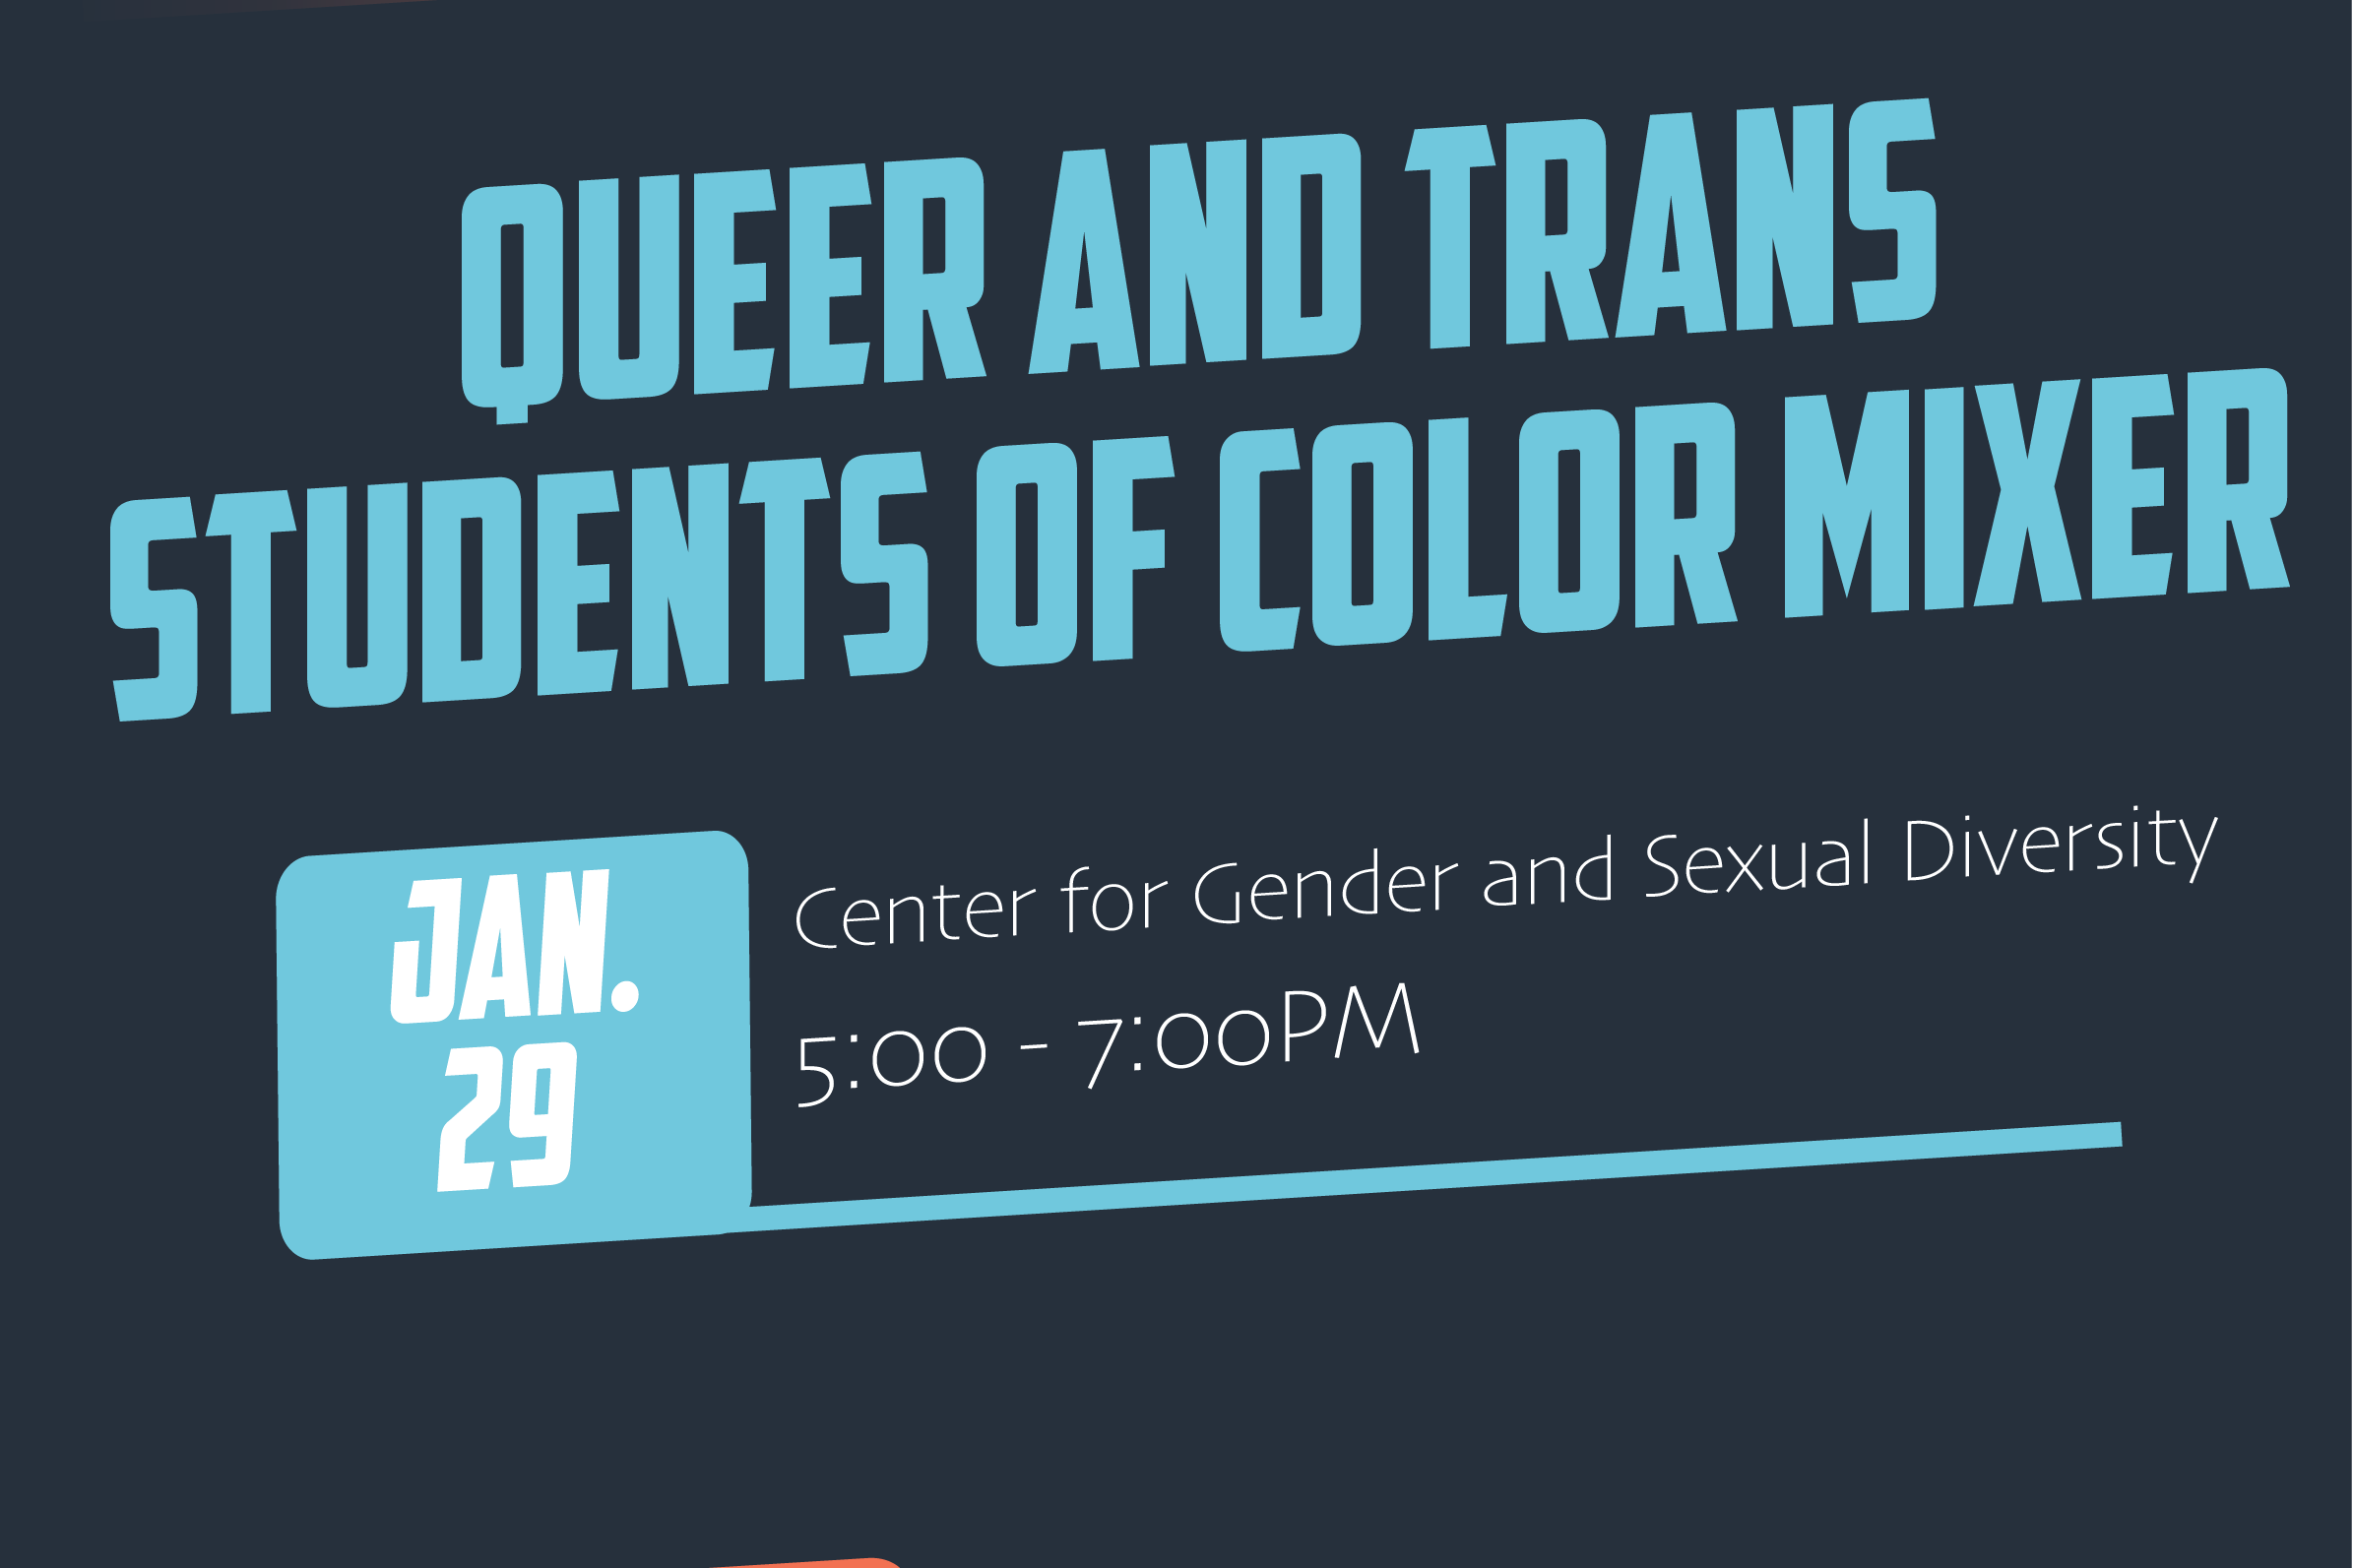 Queer and Trans Students of Color Mixer